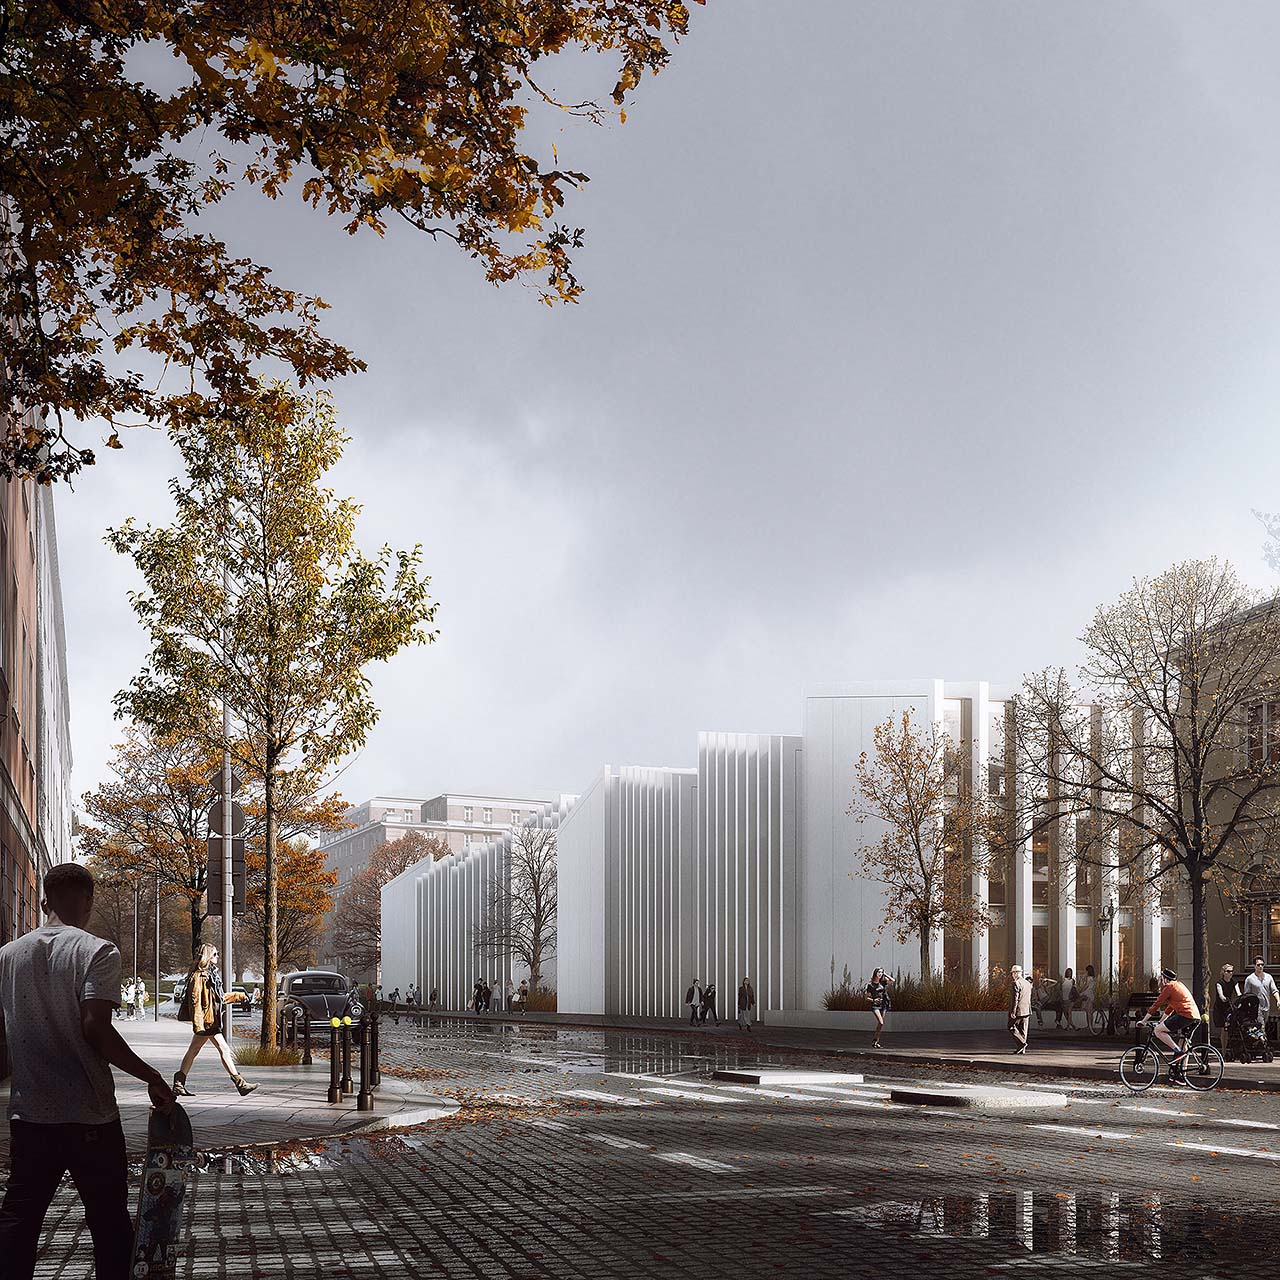 Architectural rendering of a university building in autumn, dramatic light